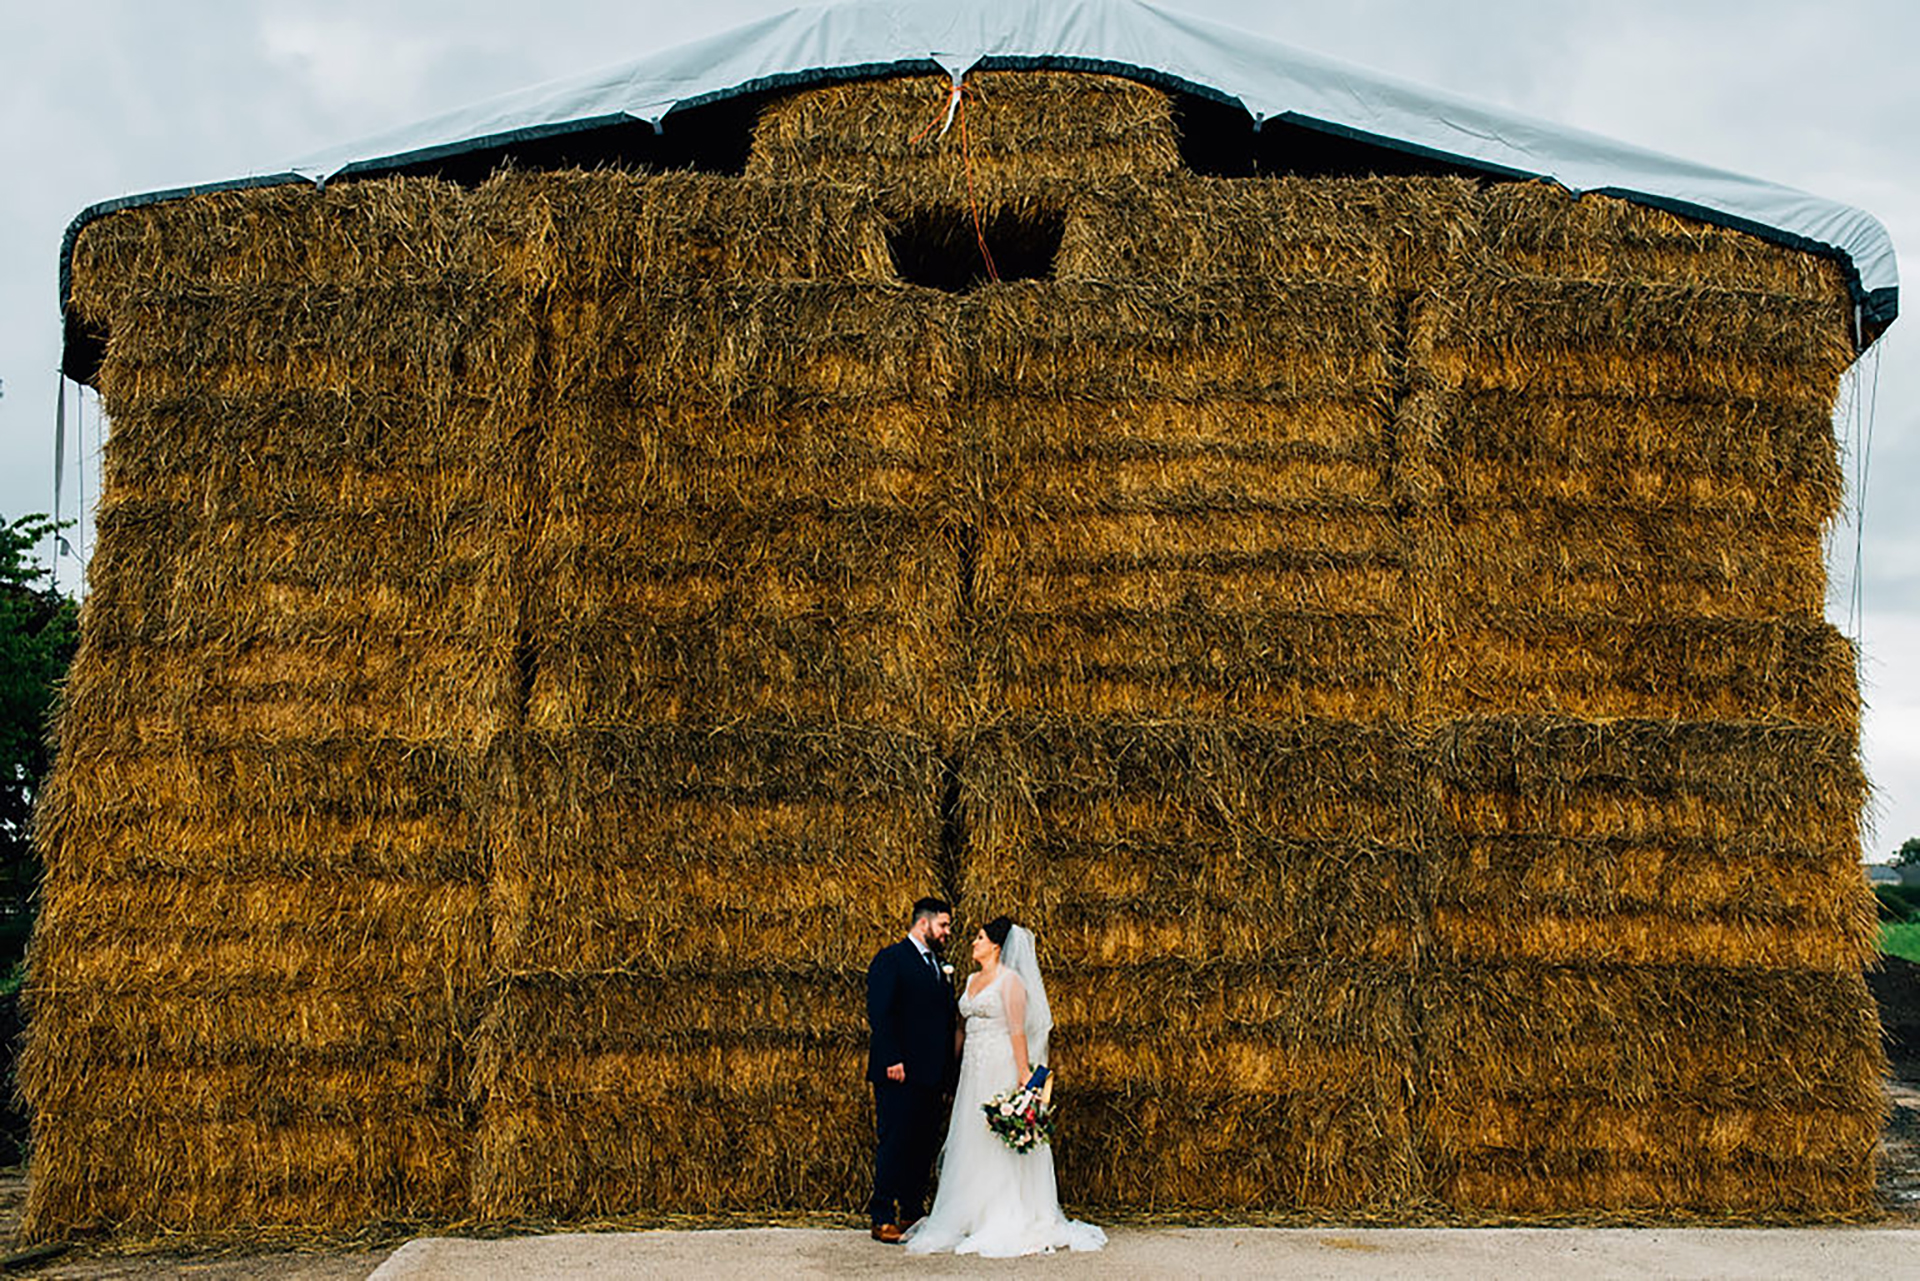 The Bride and groom standing by hay bales